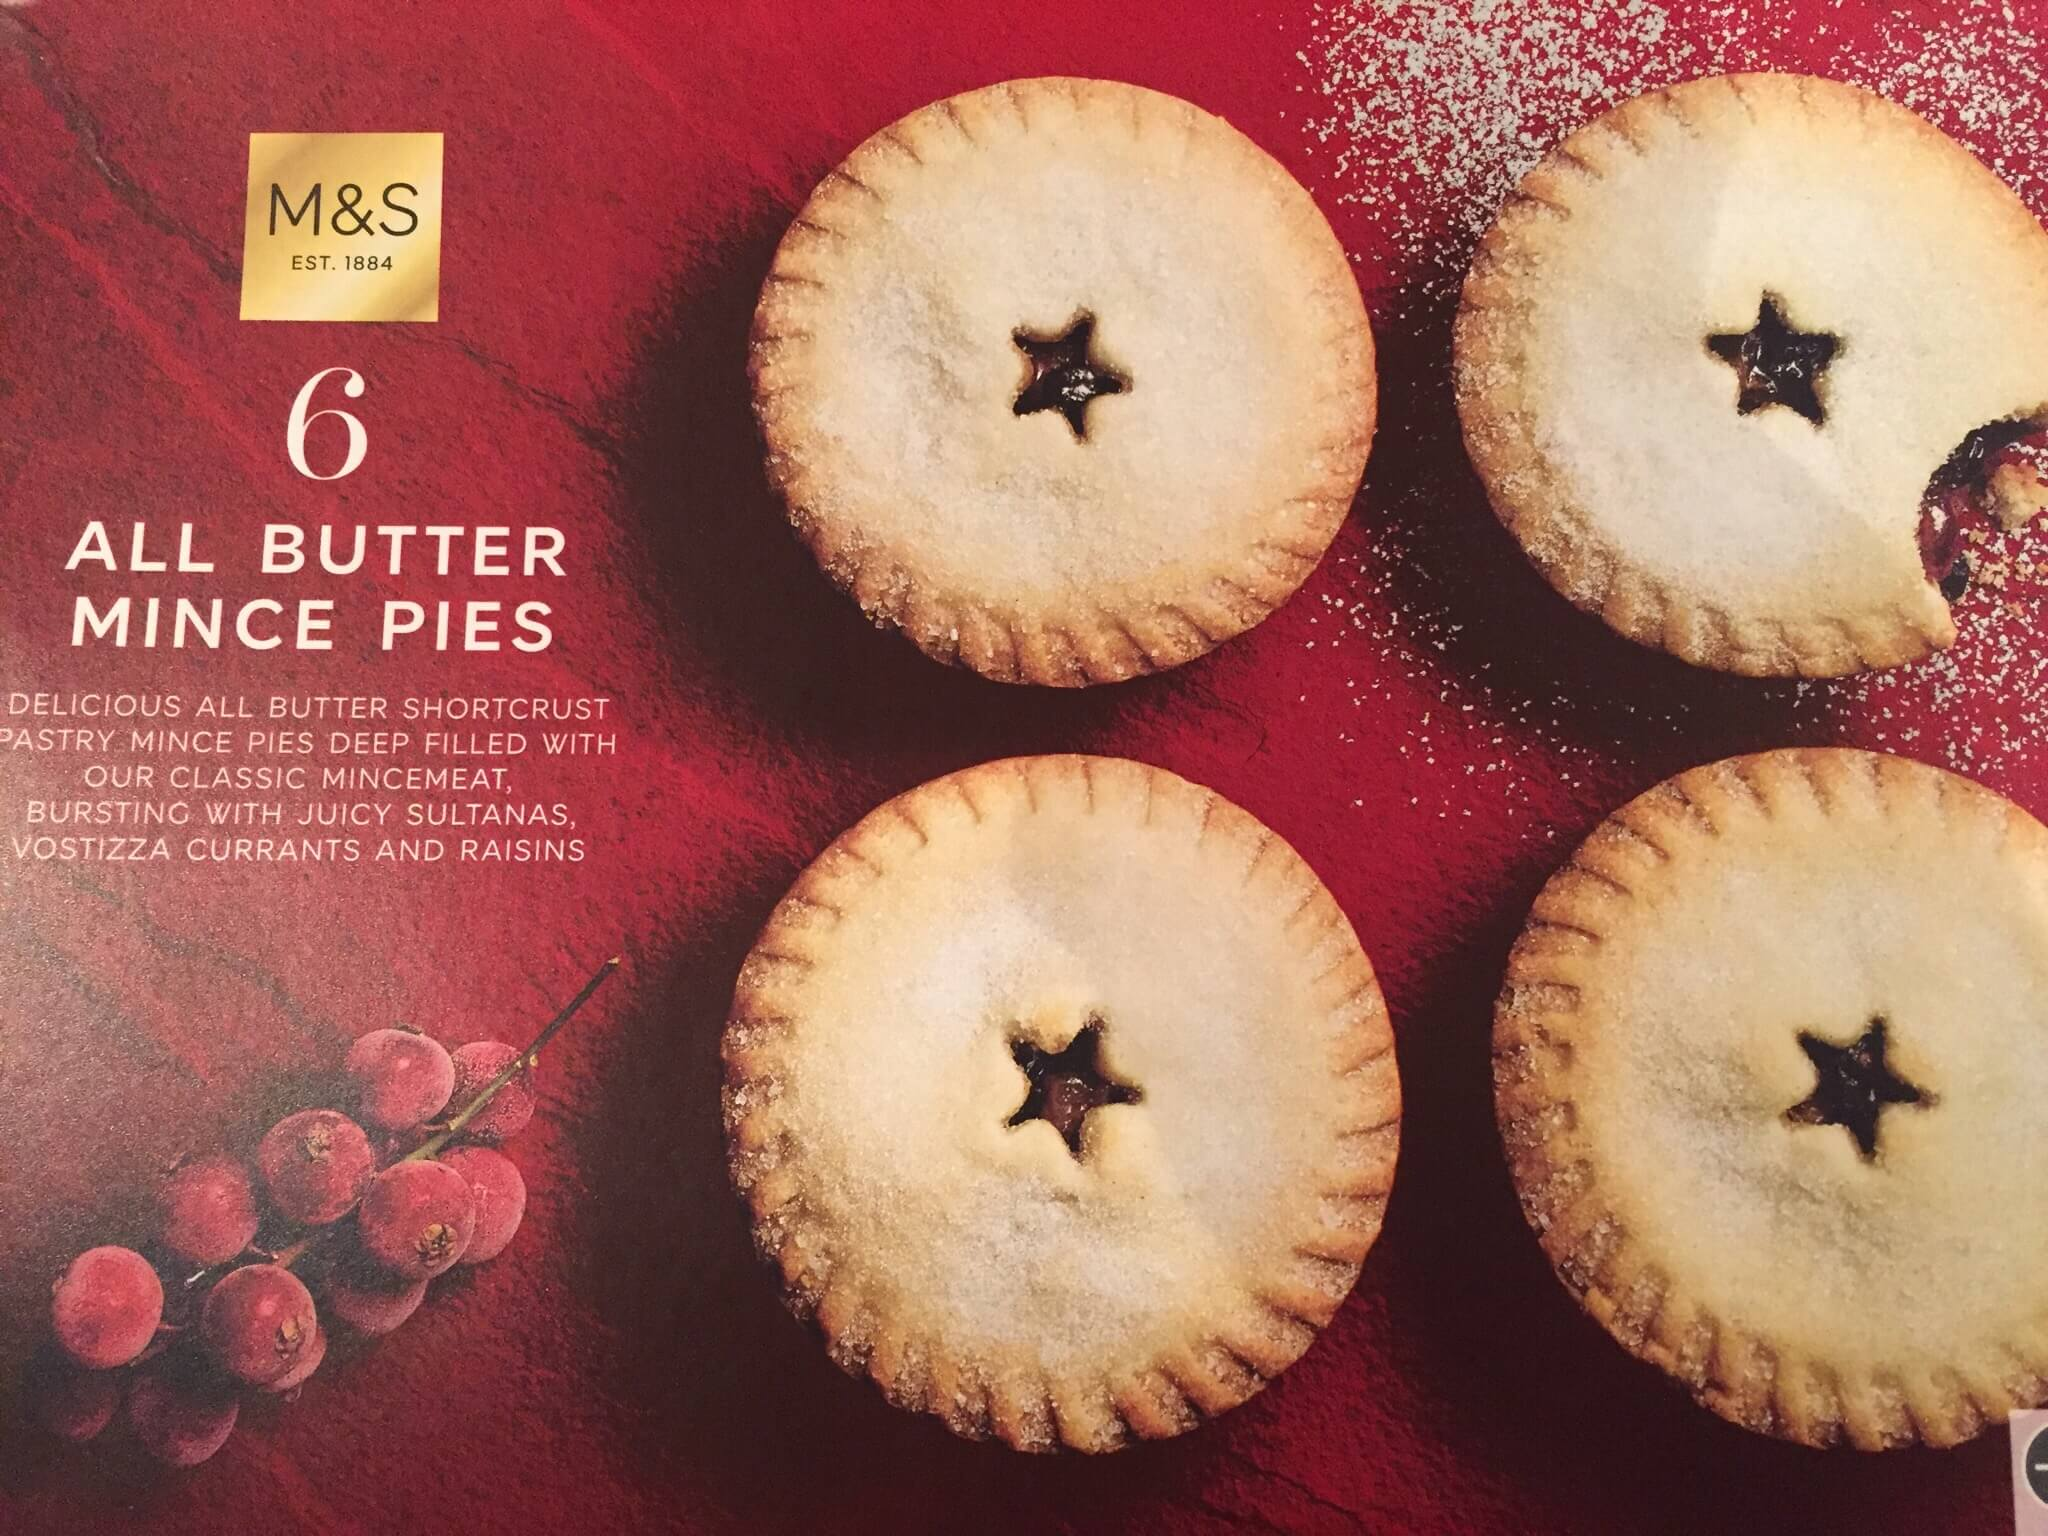 M&S All Butter Mince Pie Review